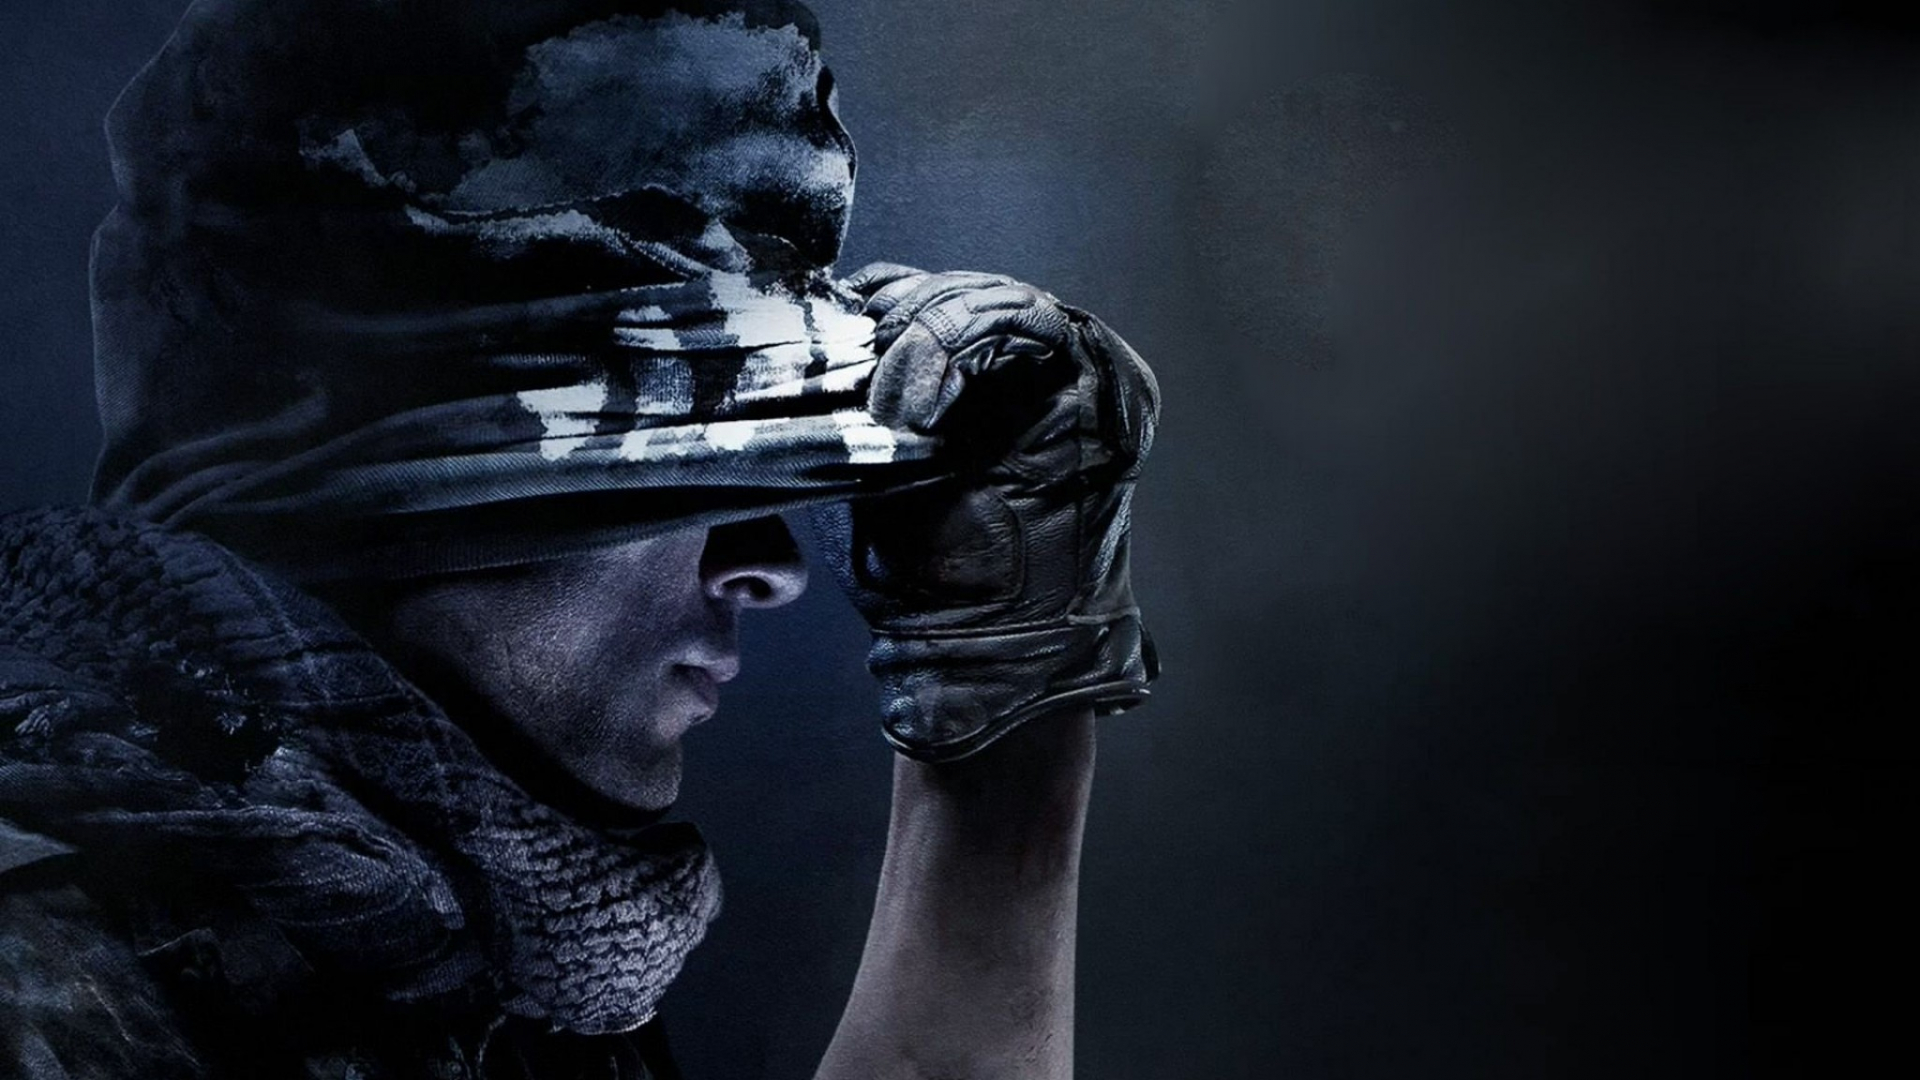 Free Download 2048x1152 Gaming Wallpaper Cod Video Game Call